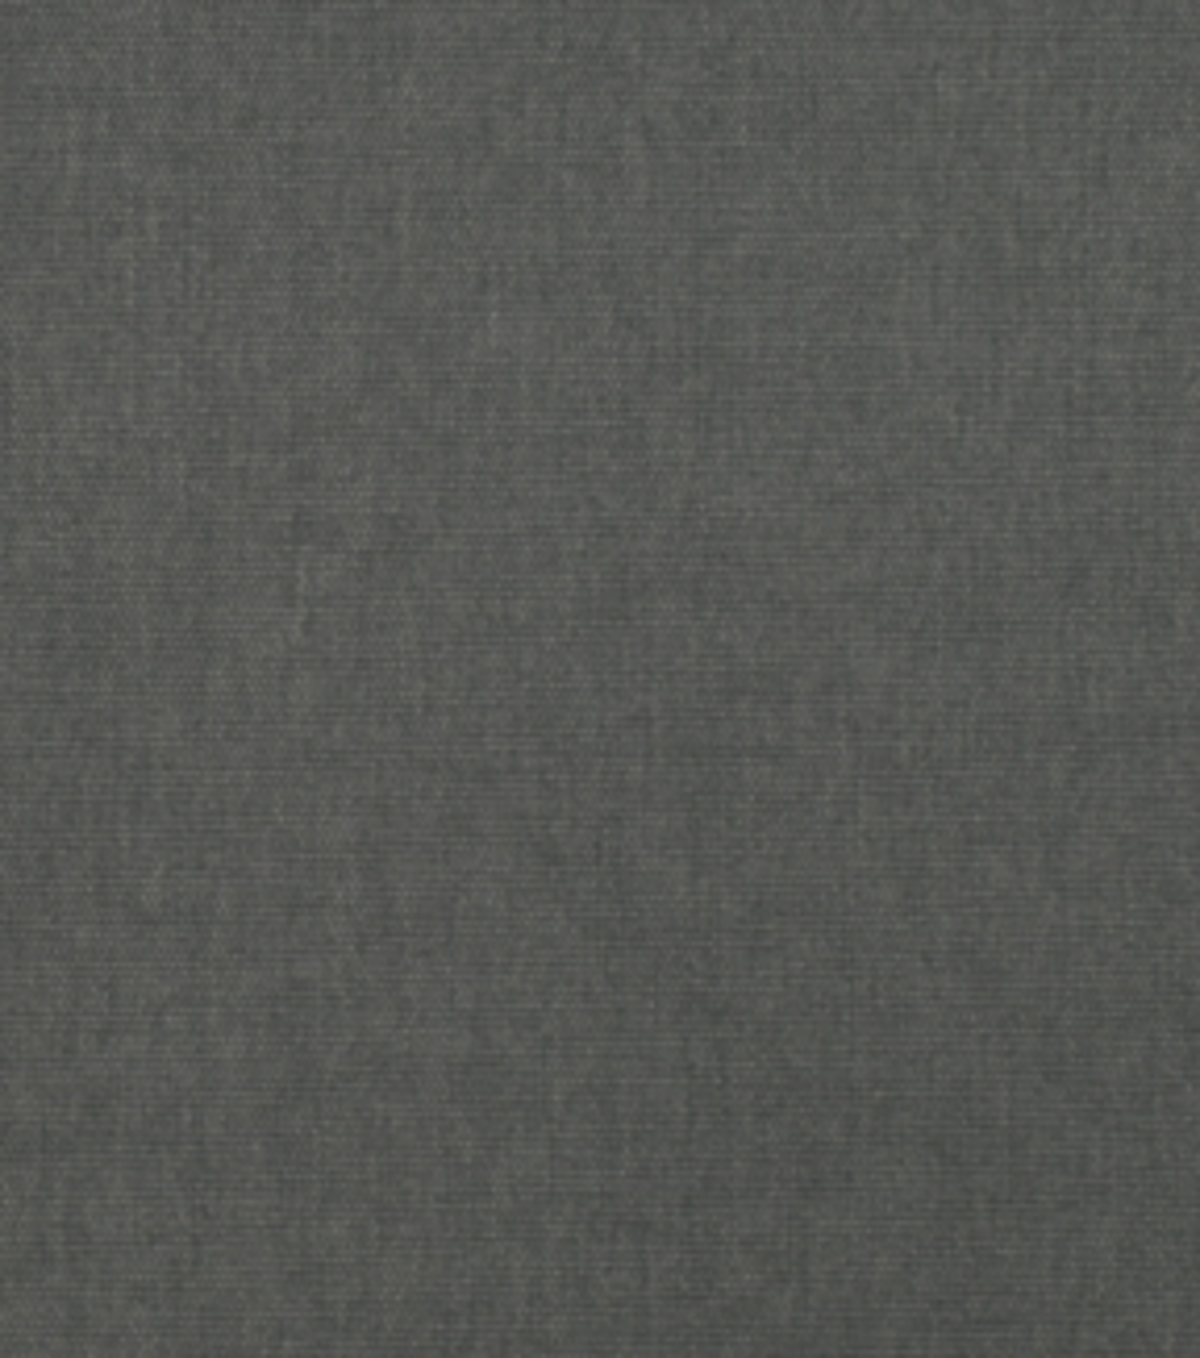 Home Decor 8\u0022x8\u0022 Fabric Swatch-Eaton Square Depot Grey